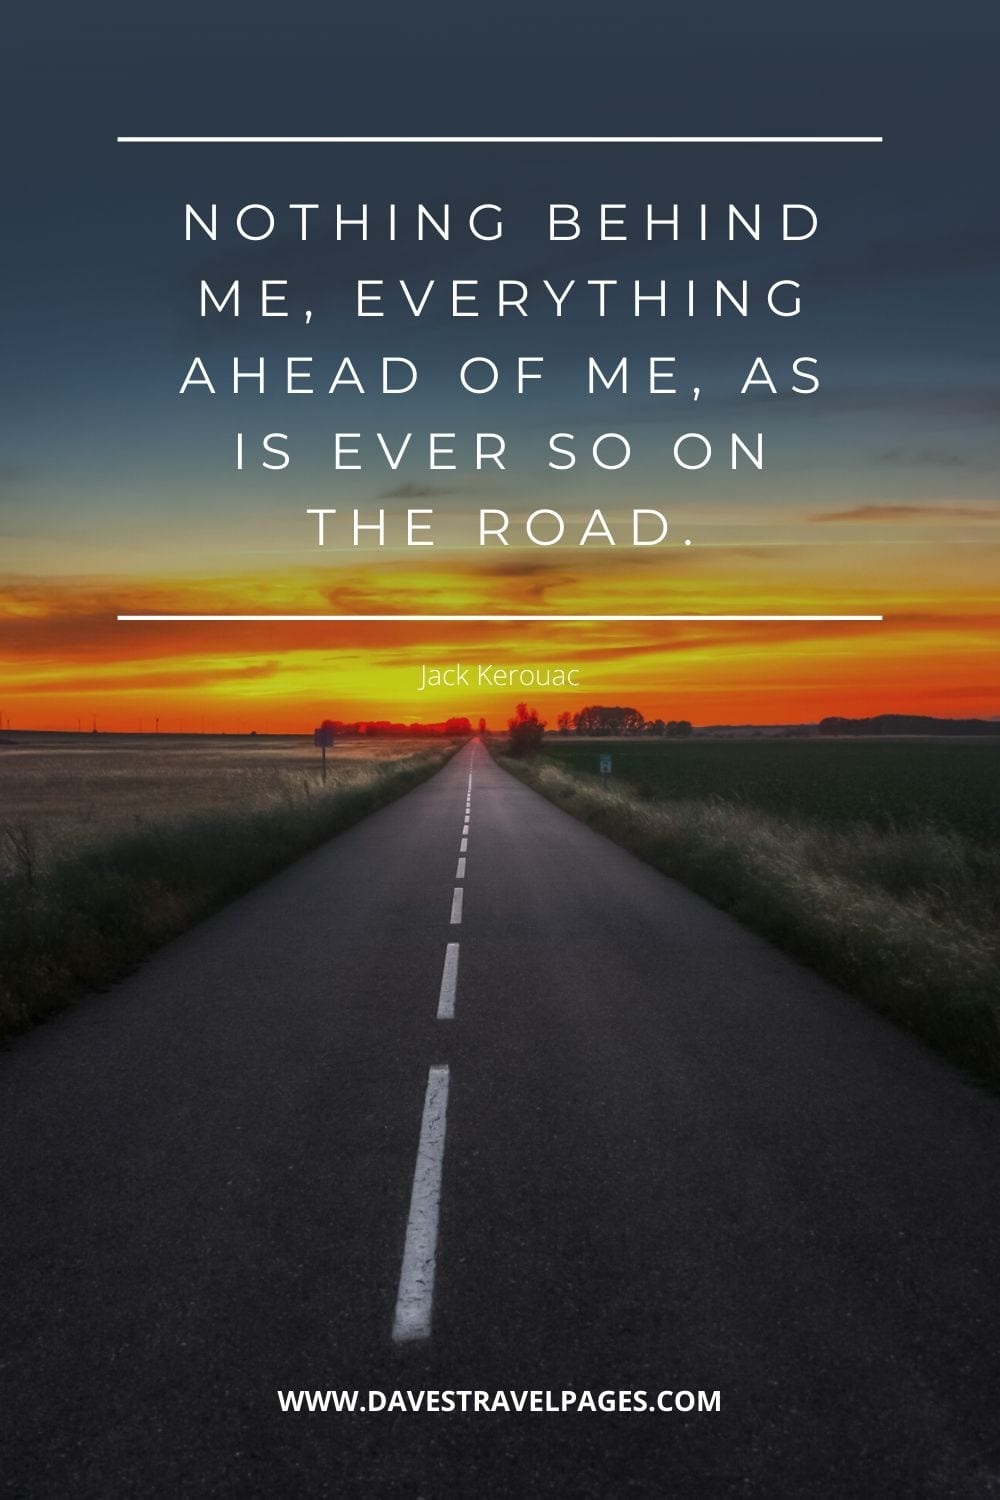 """Nothing behind me, everything ahead of me, as is ever so on the road."" - On The Road Quote"